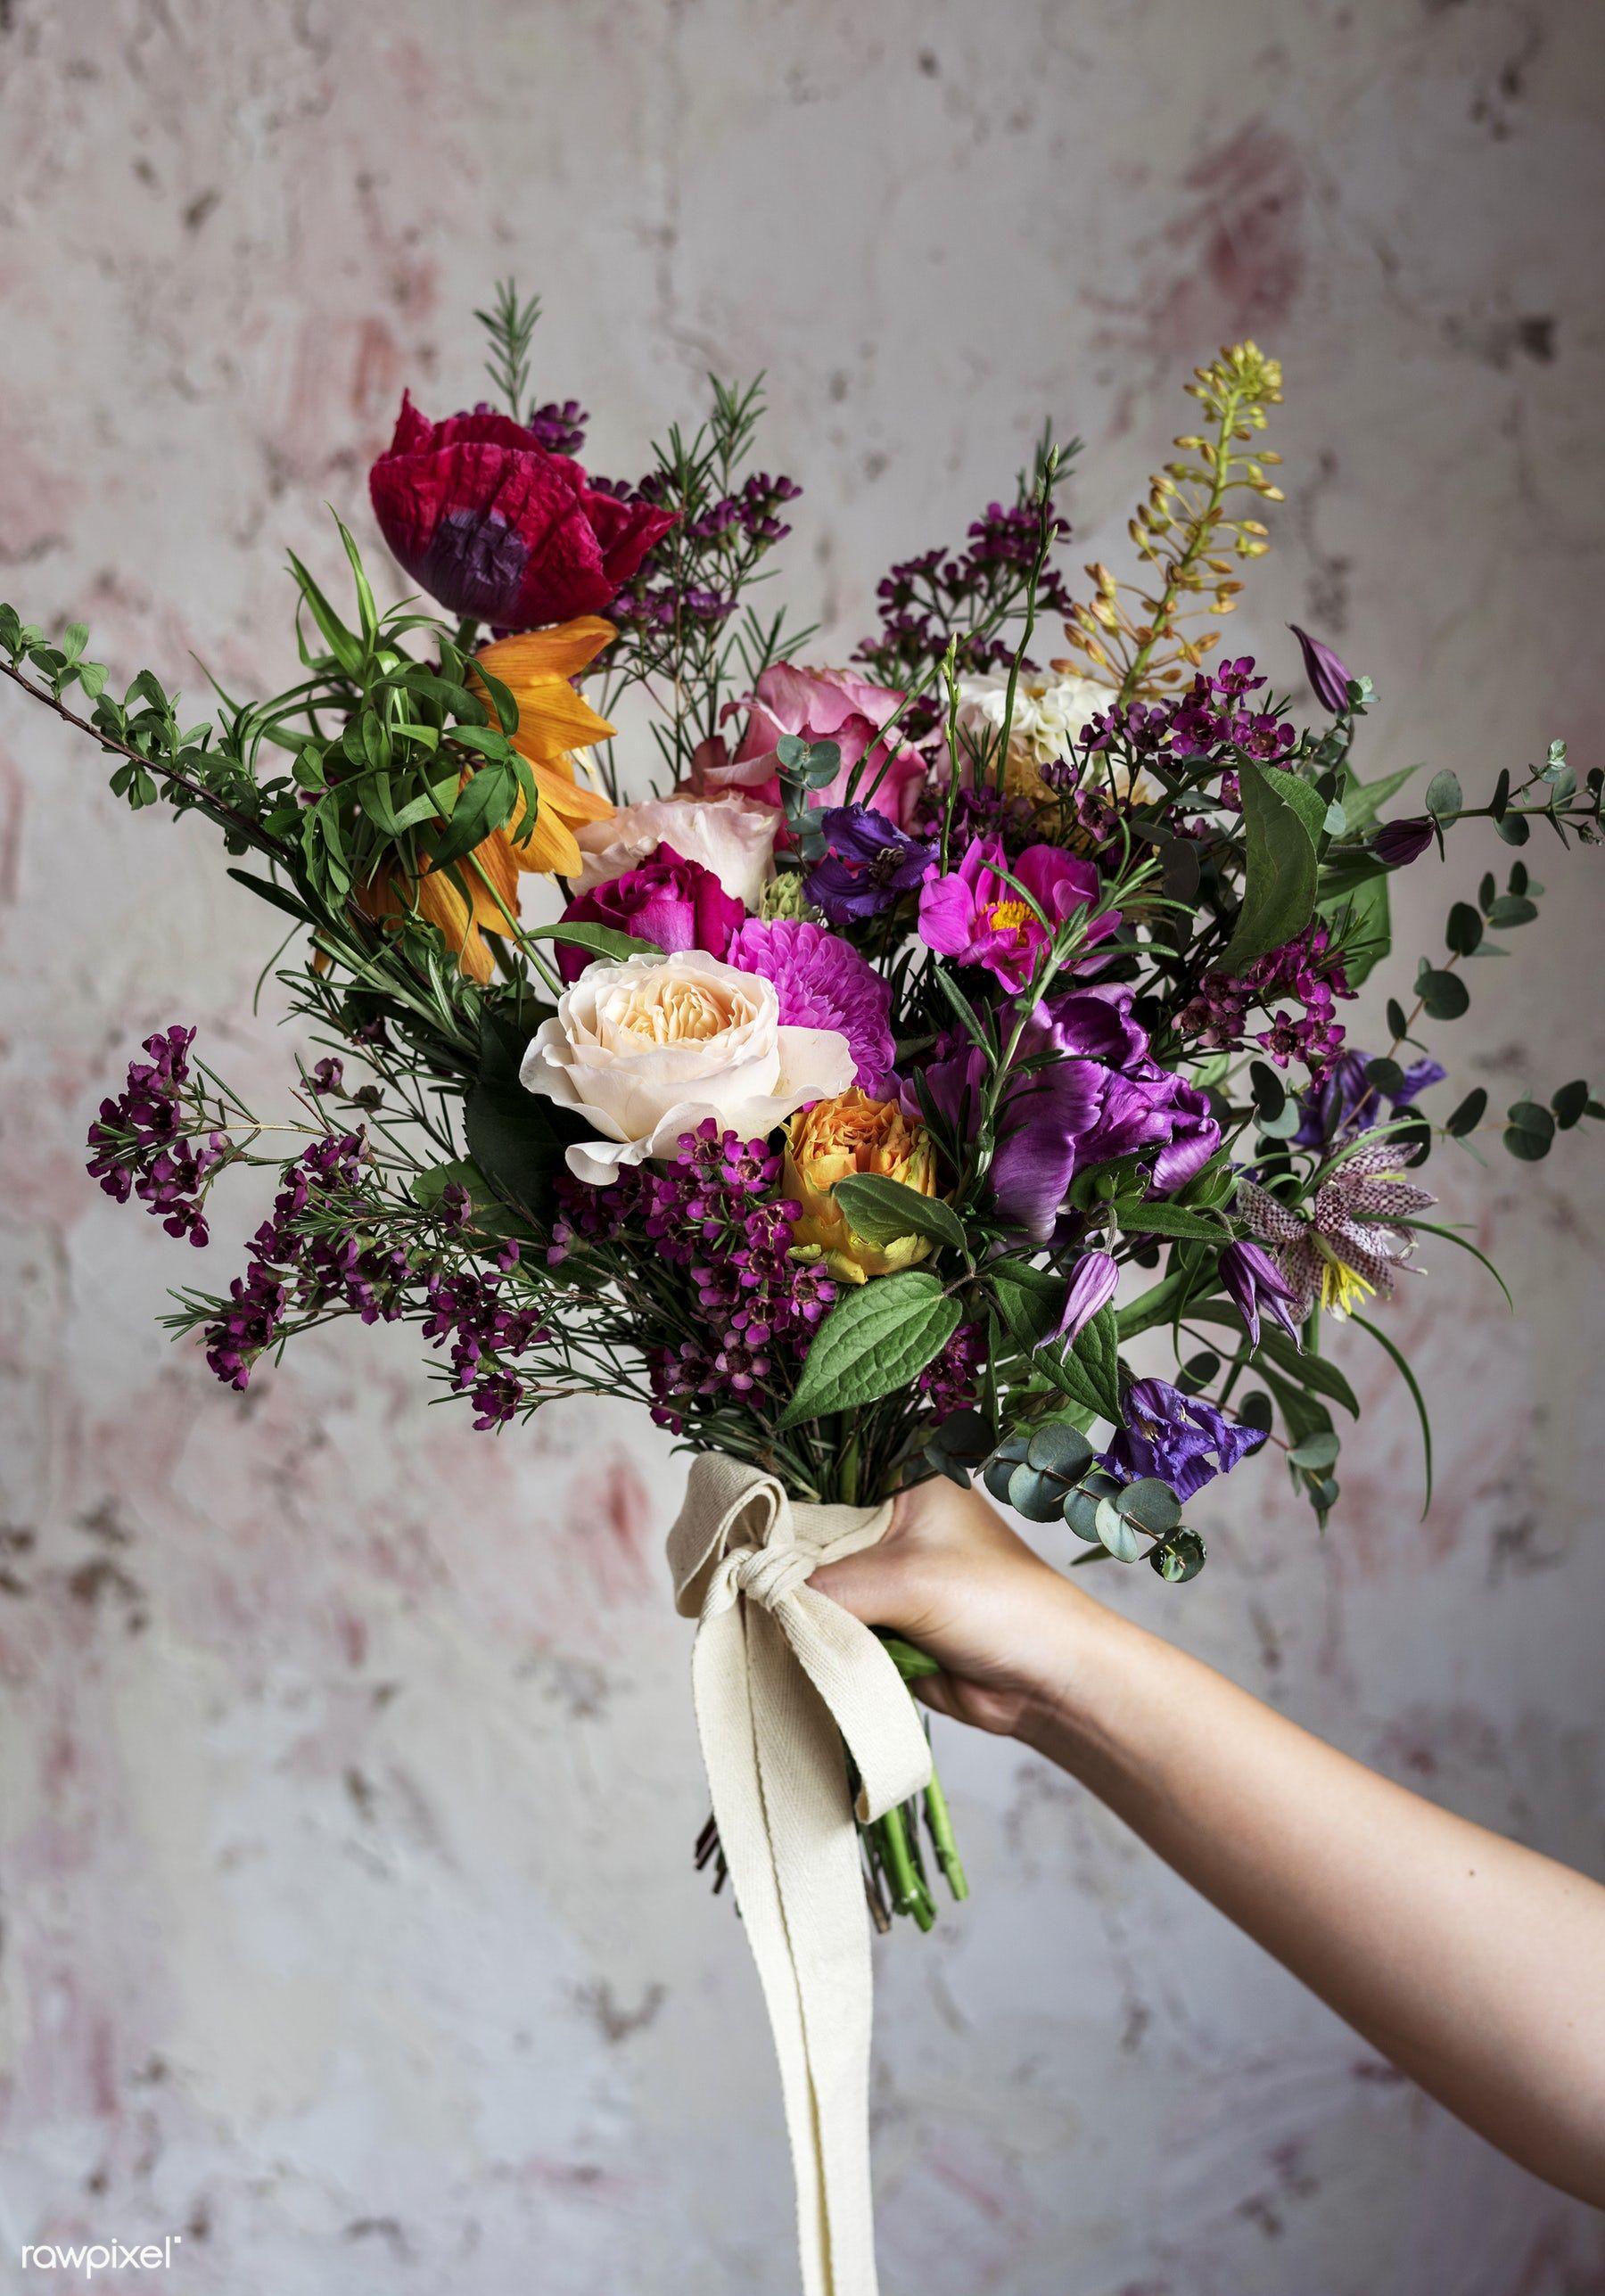 Peopl Hand Holding Beautiful Flowers Bouquet Premium Image By